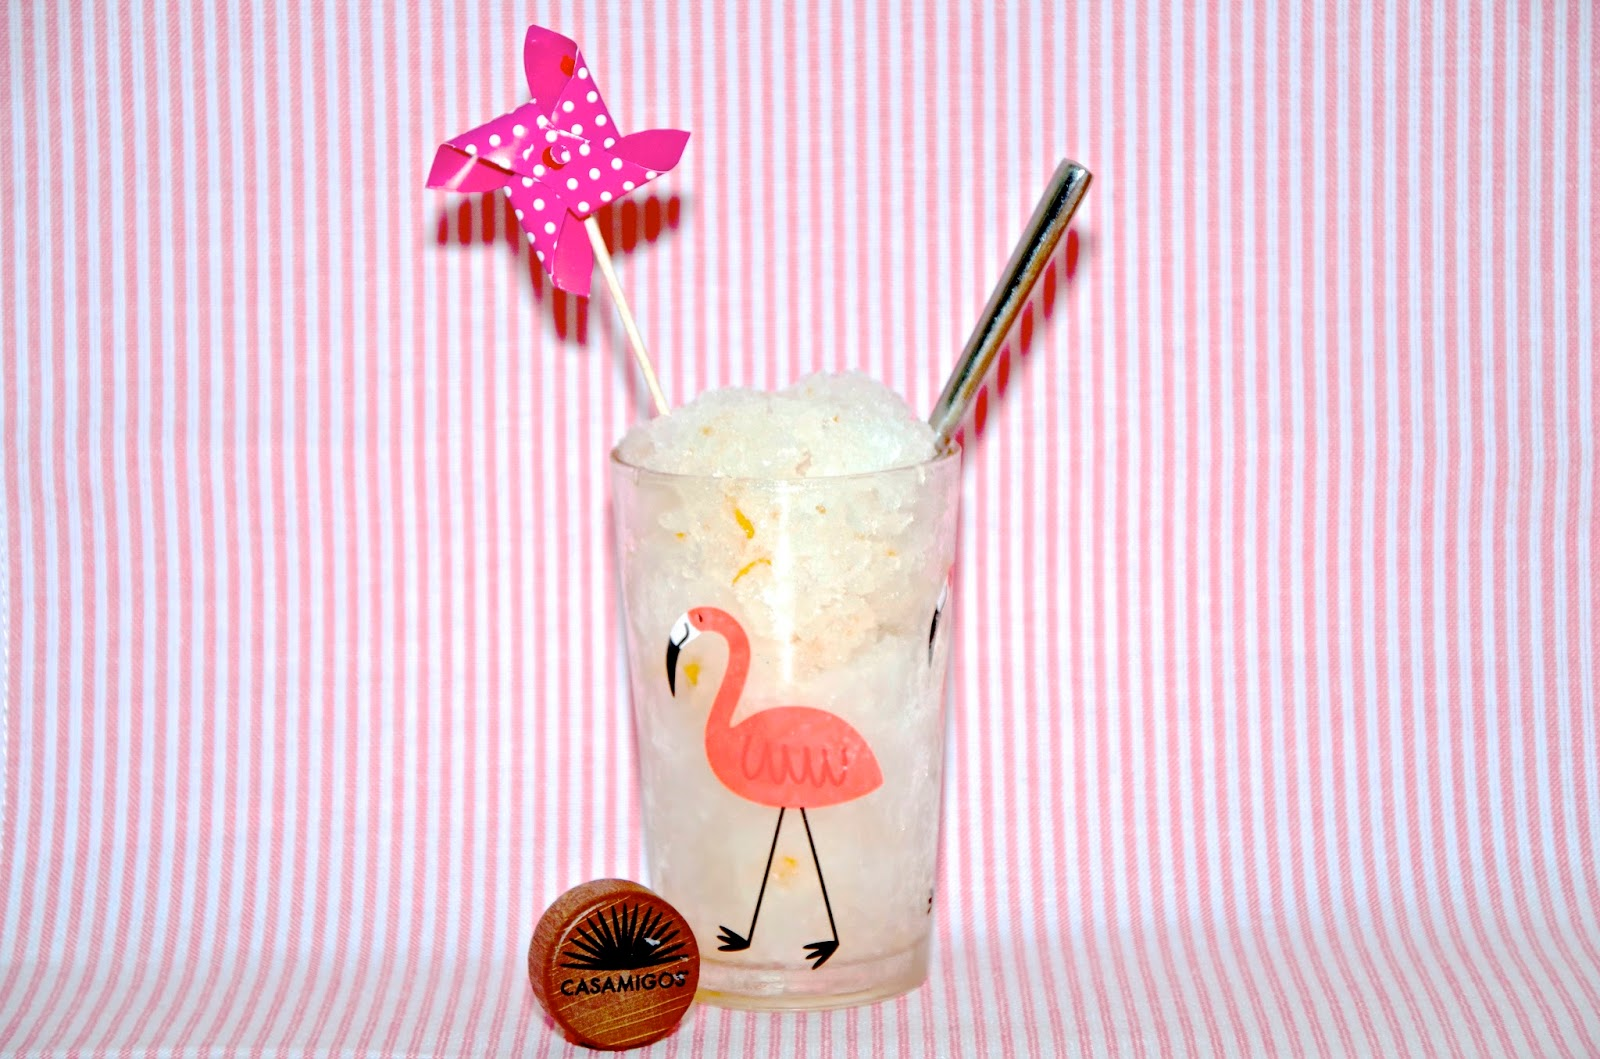 Grapefruit Tequila Granita in Flamingo Glass with Pink Striped Background